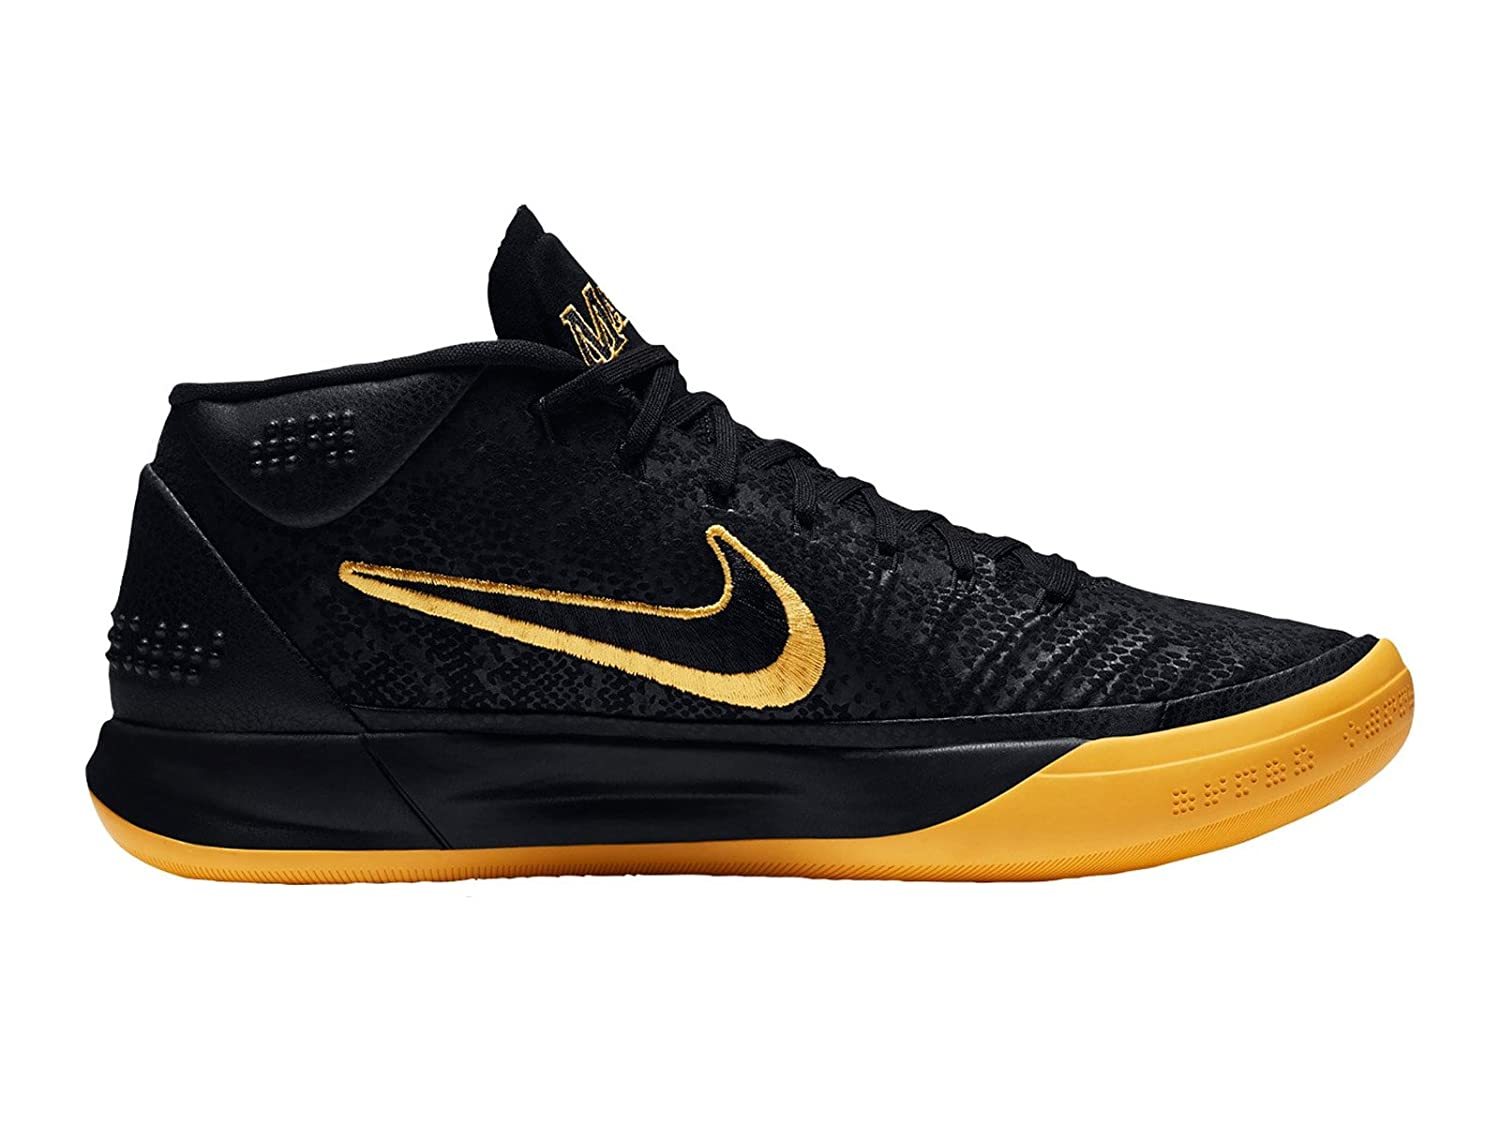 online store e4525 05bcb Nike Kobe AD BM Mens Hi Top Basketball Trainers AQ5164 Sneakers Shoes (UK  9.5 US 10.5 EU 44.5, Black University Gold 001)